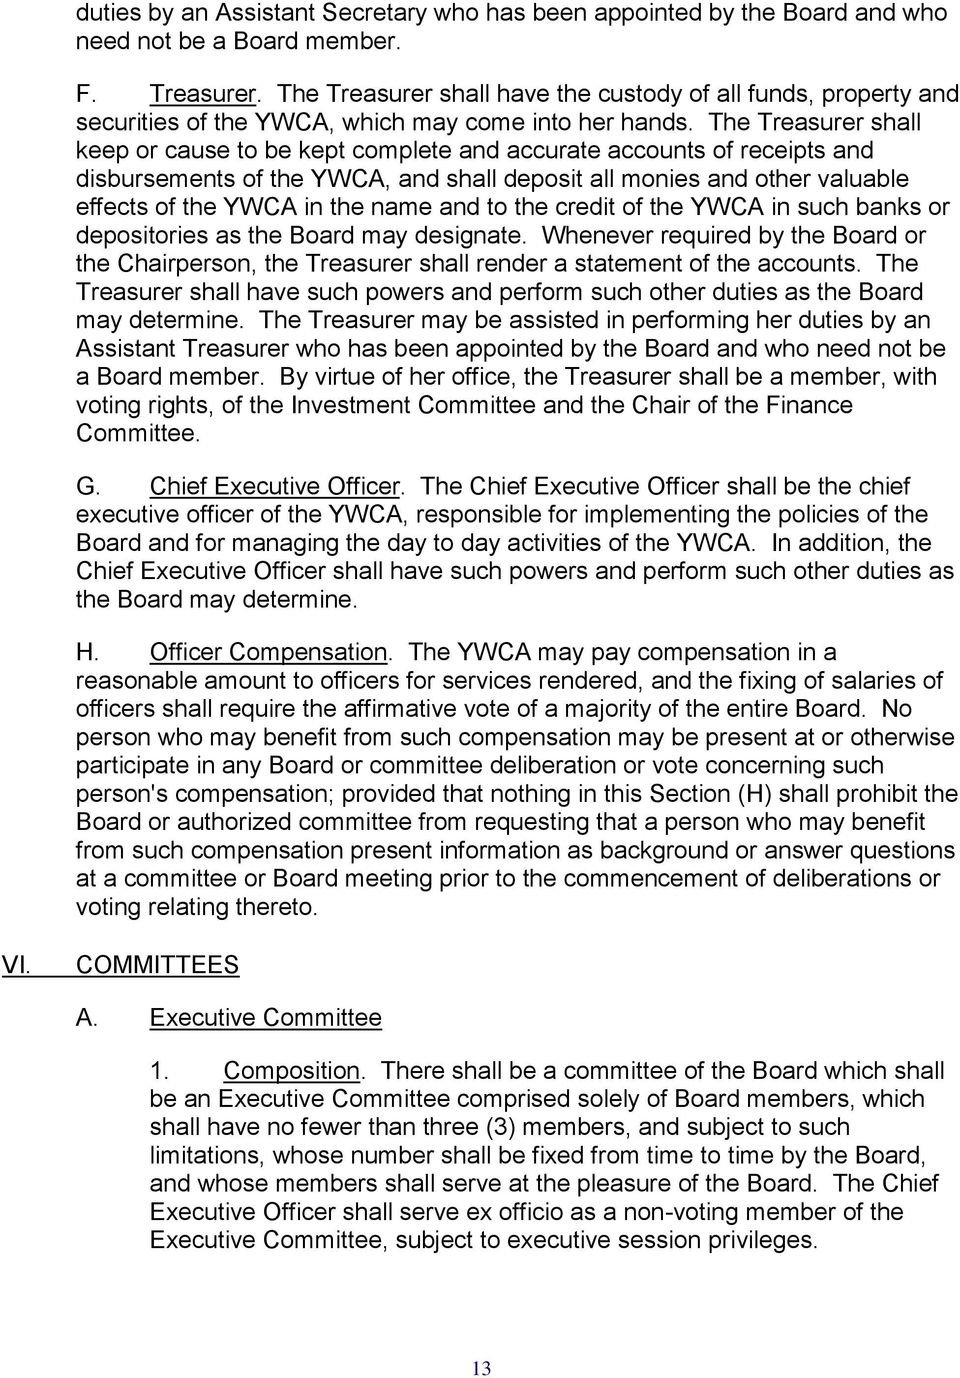 The Treasurer shall keep or cause to be kept complete and accurate accounts of receipts and disbursements of the YWCA, and shall deposit all monies and other valuable effects of the YWCA in the name